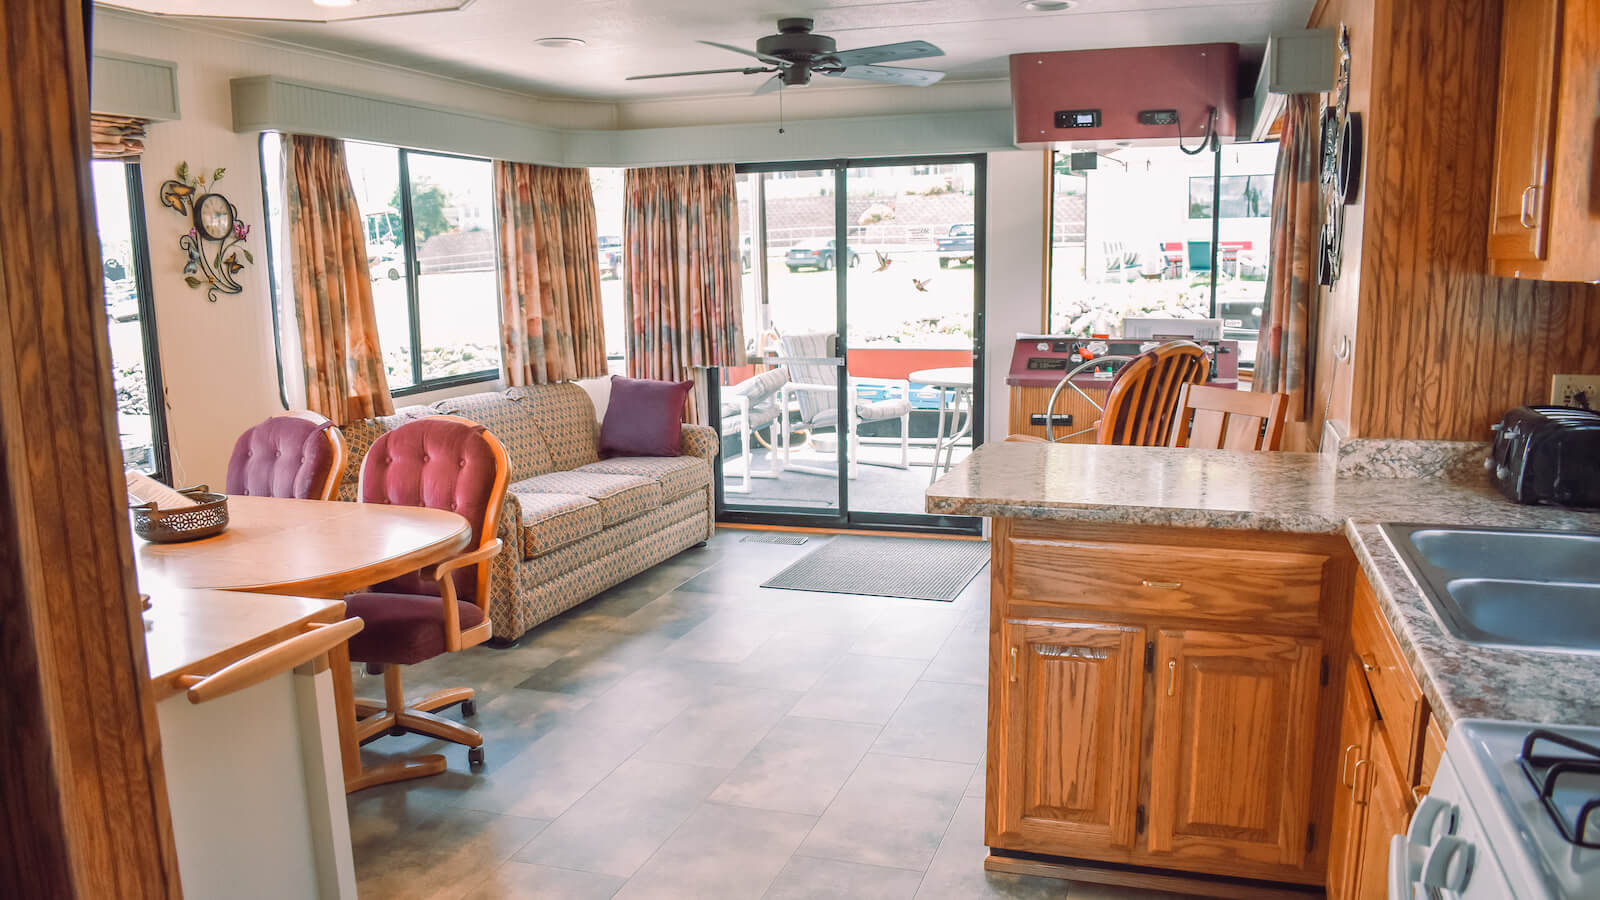 Living room and kitchen in the S&S Rentals Riverview 58' Houseboat